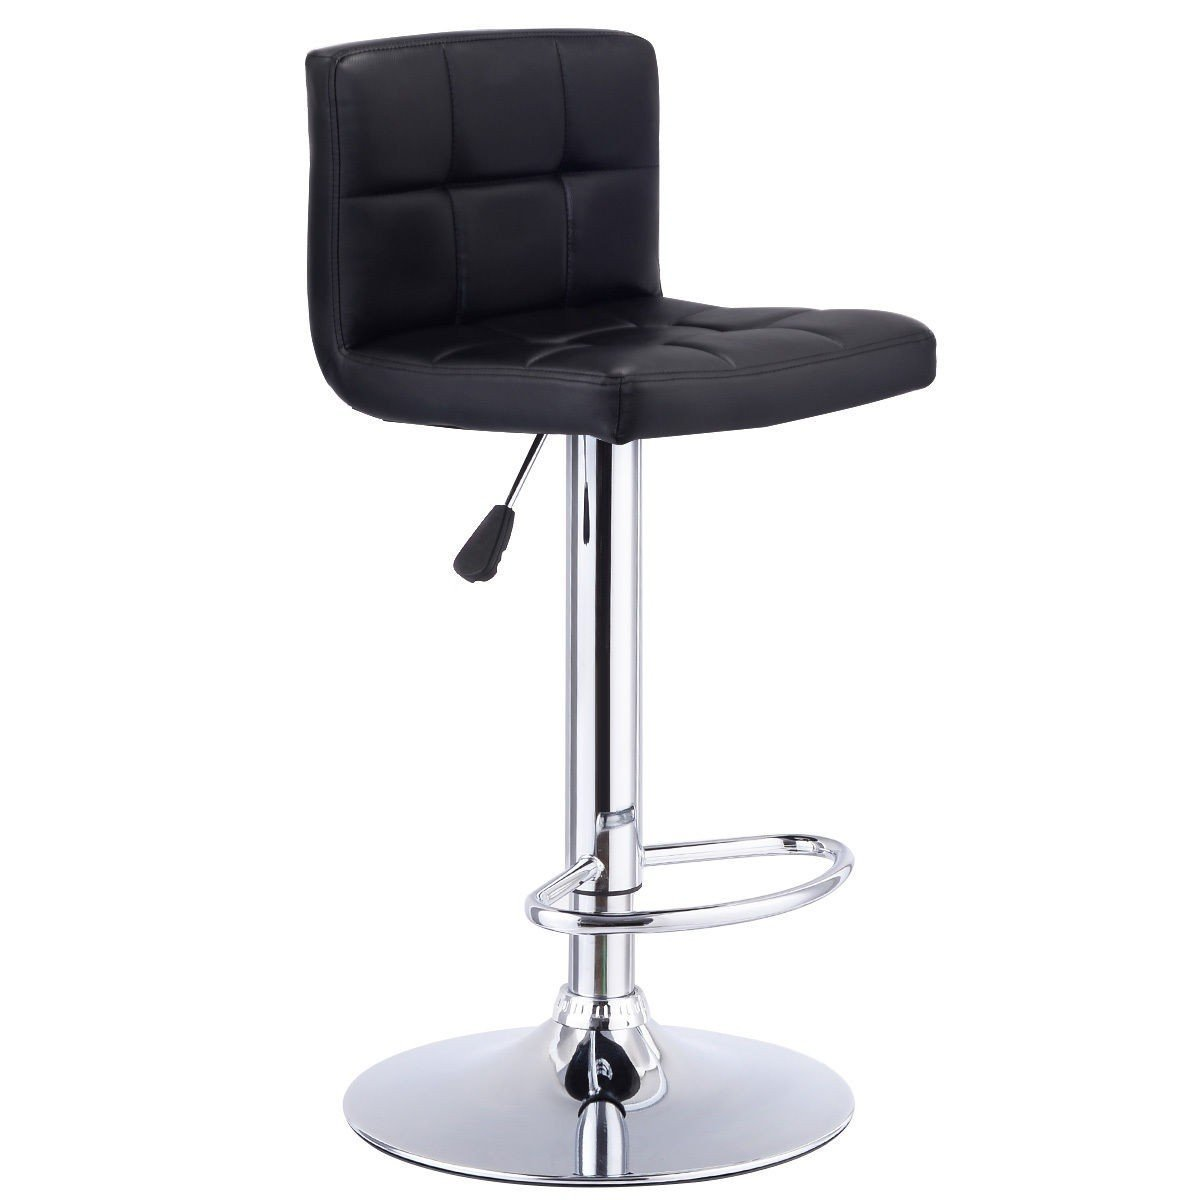 GentleShower Barstools, Modern Square Shape Swivel Bar Stool Bistro Chair PU Leather Adjustable Hydraulic Pub Chair Counter Barstool with Backrest, 1 Pcs Black